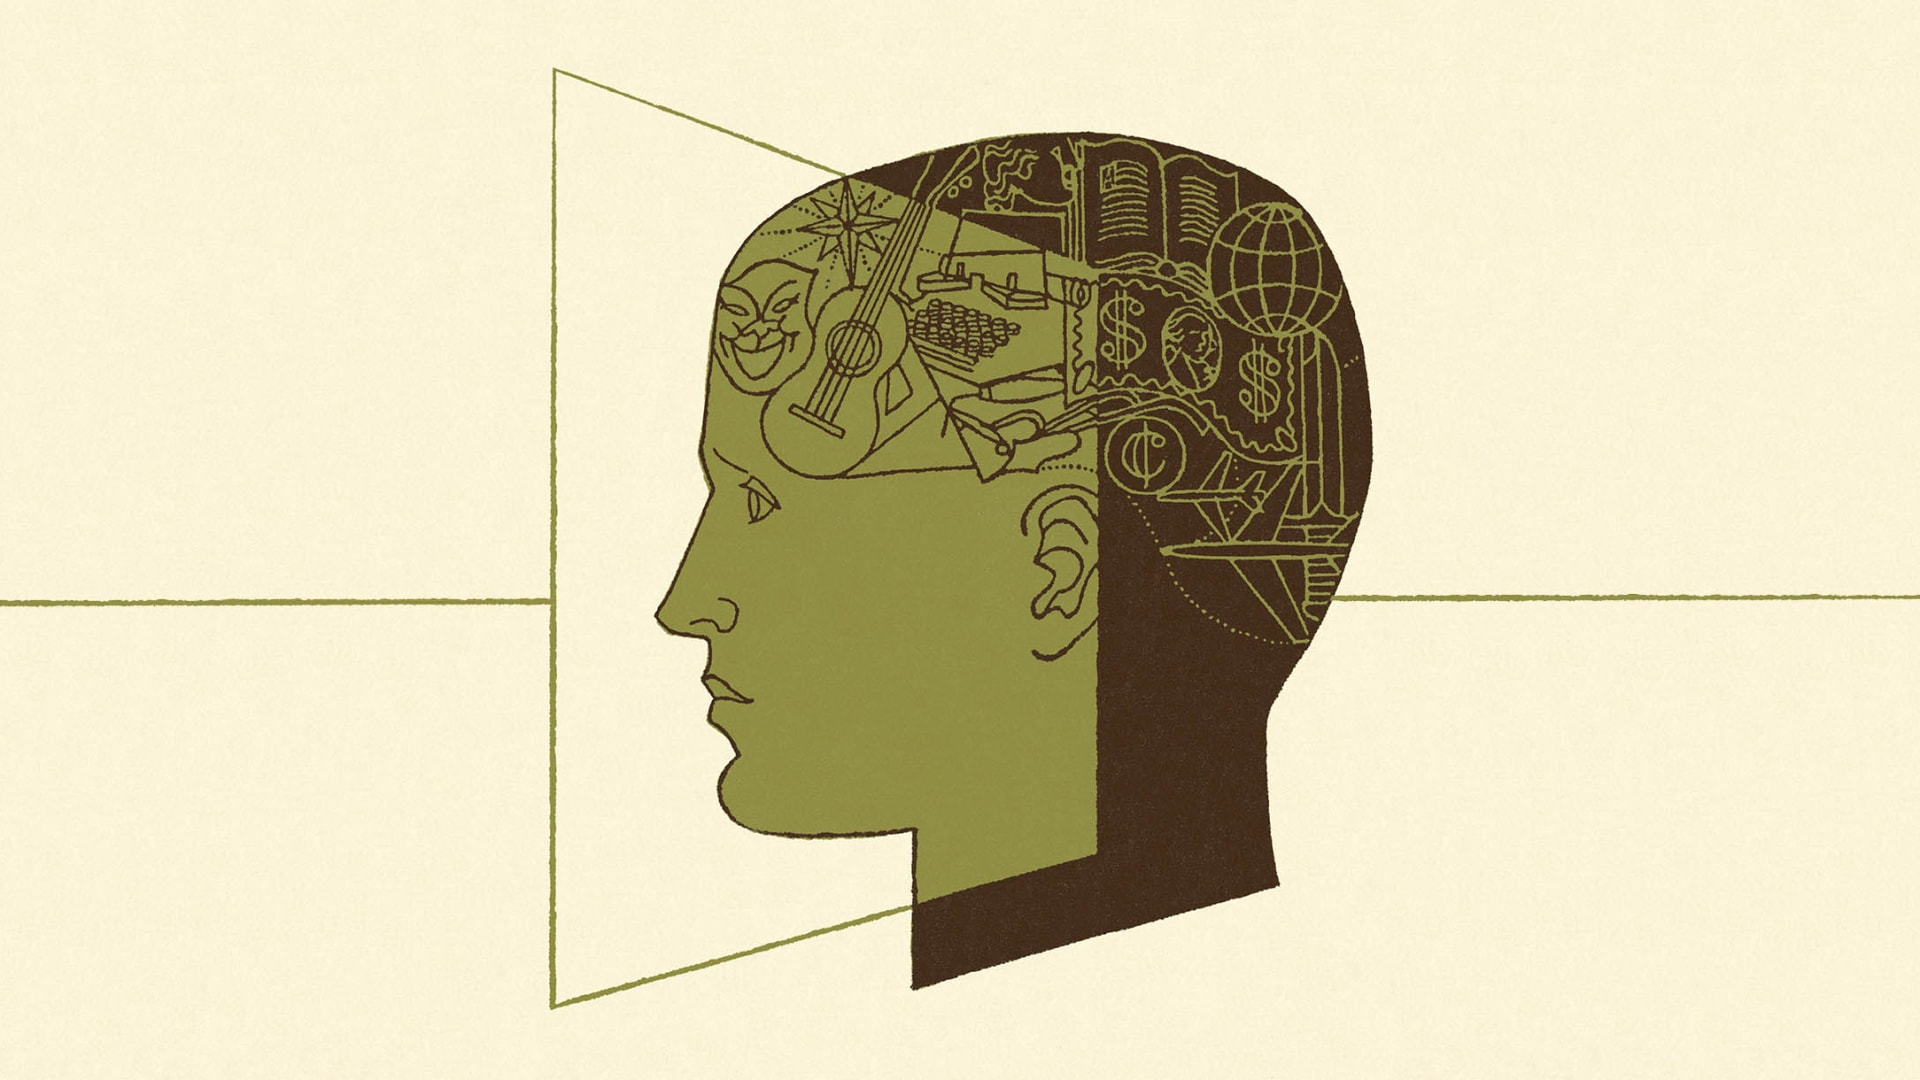 Focus, Persistence, and Cognitive Control: Neuroscience Reveals How to Achieve Big Goals